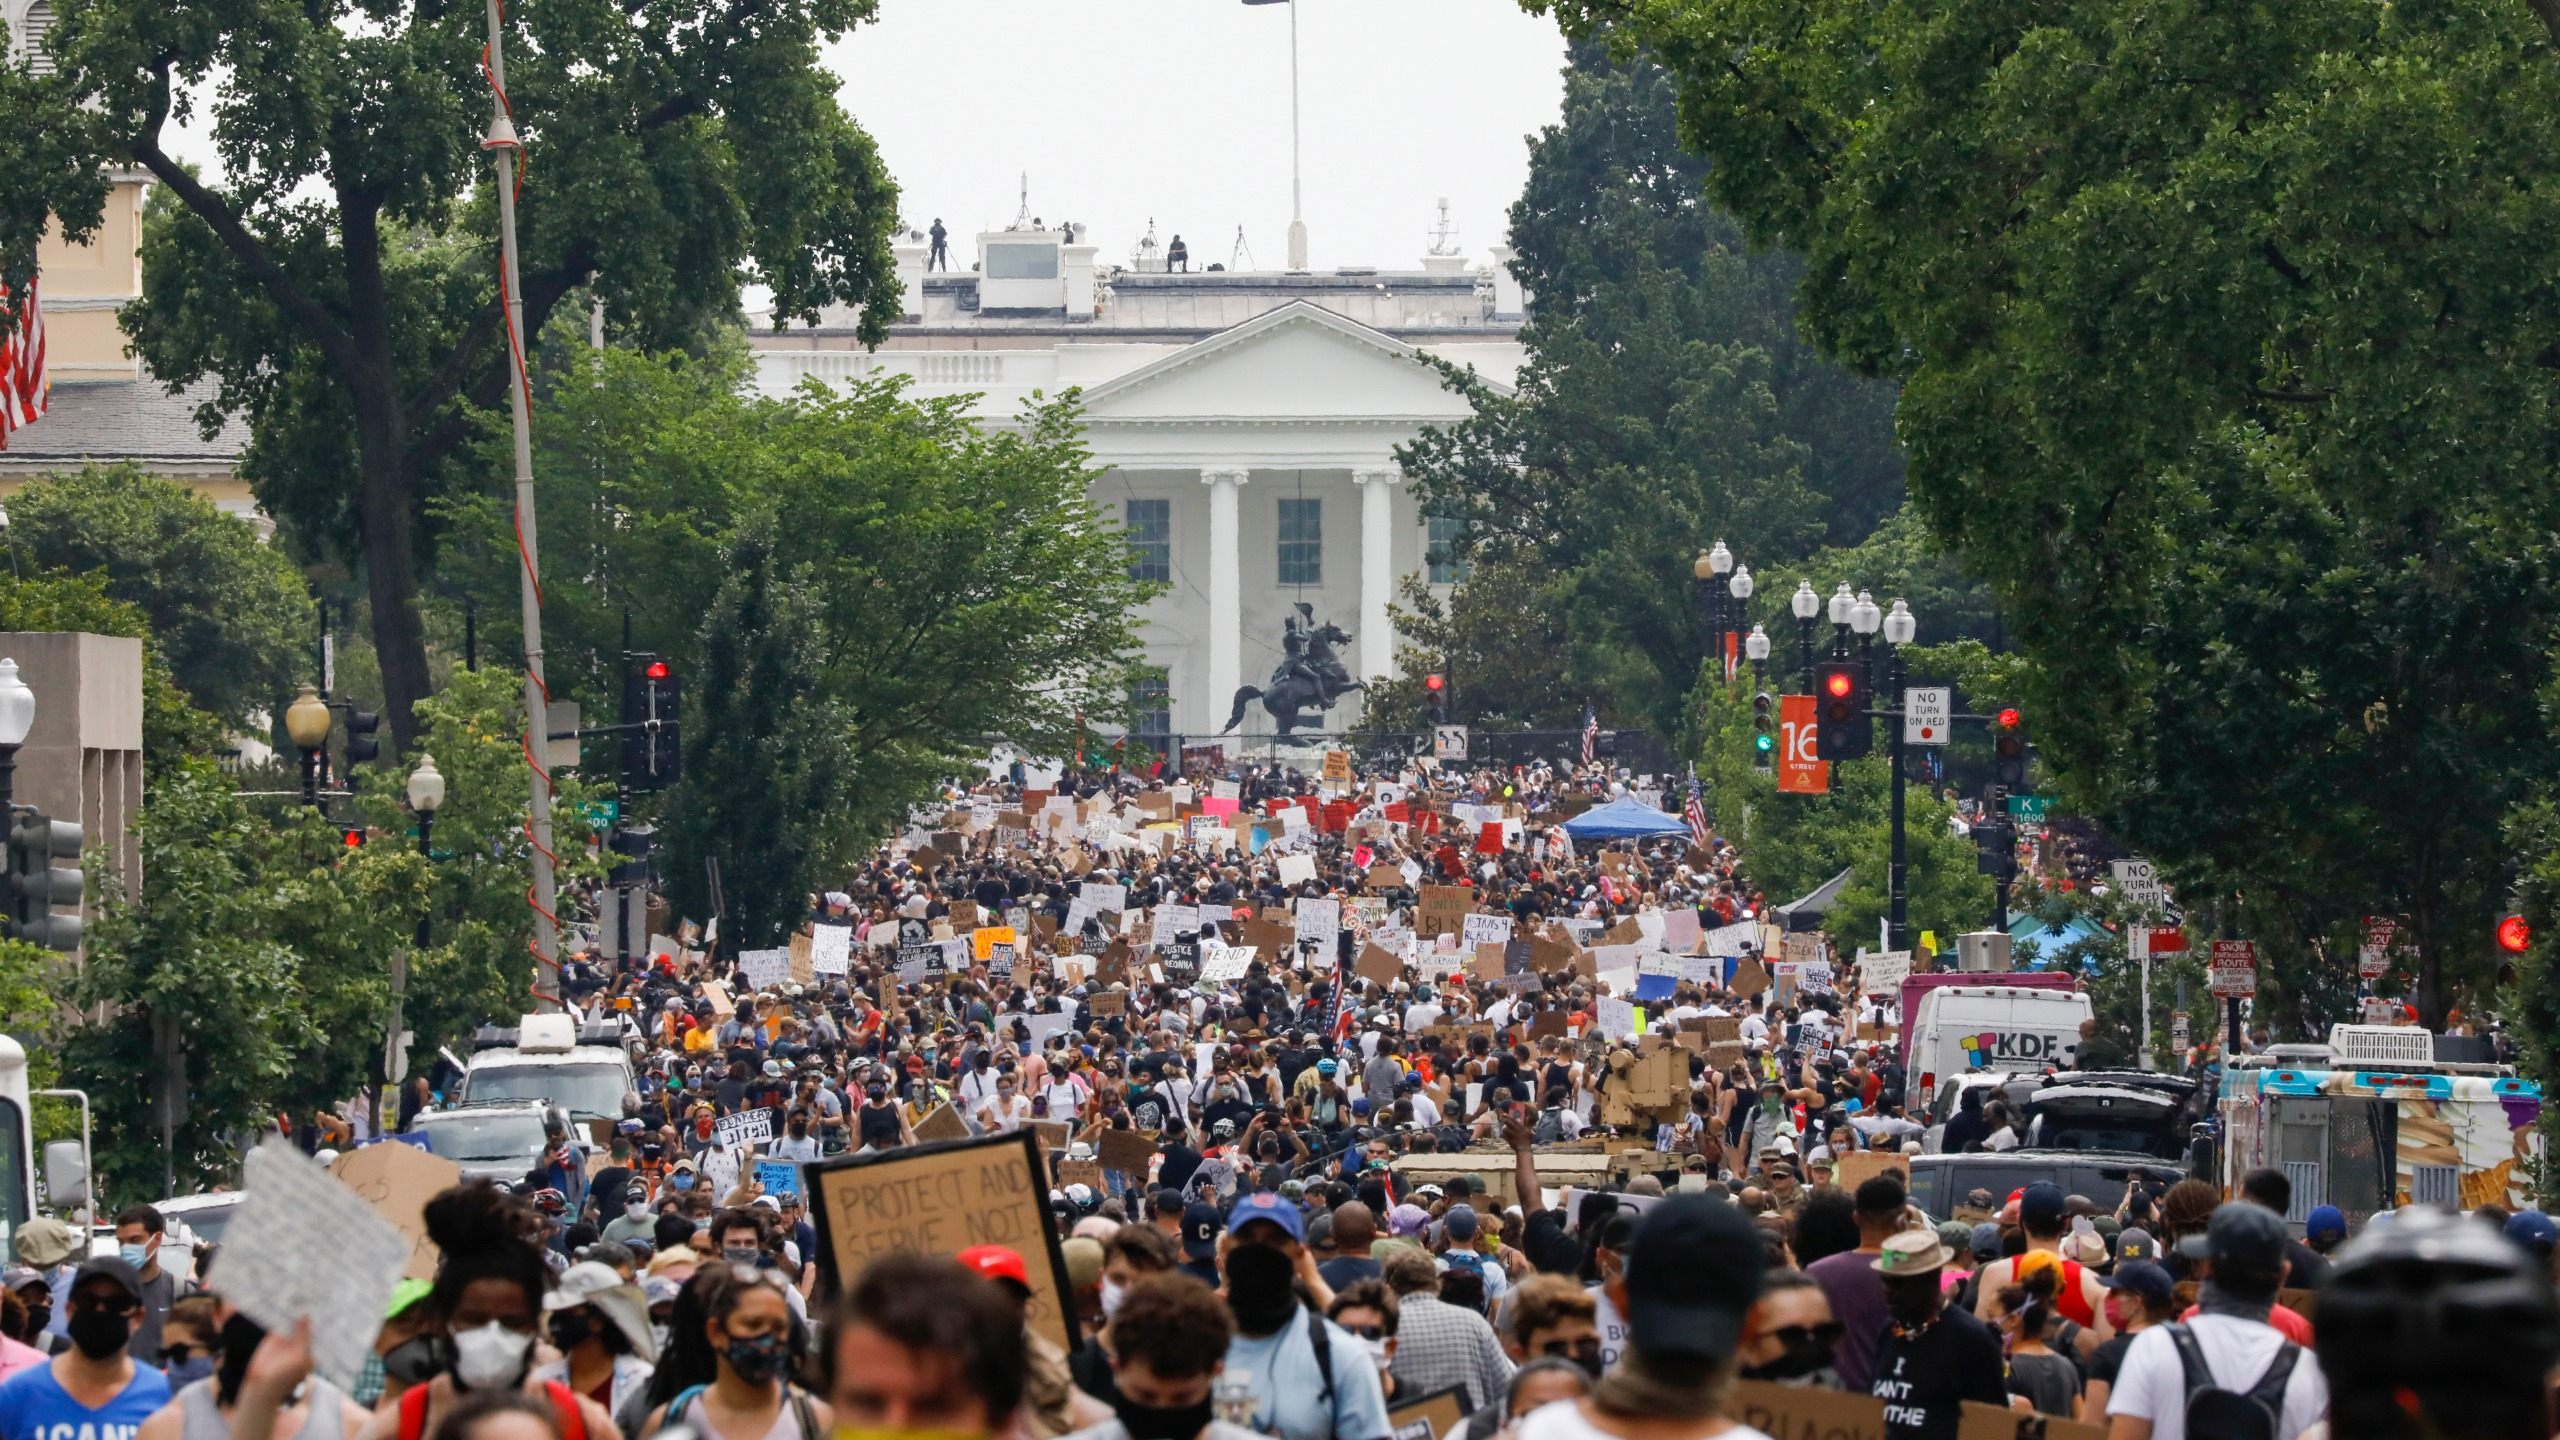 In this Saturday, June 6, 2020 file photo, demonstrators gather near the White House in Washington, to protest the death of George Floyd, a black man who was in police custody in Minneapolis. Public health experts say there is little evidence that the protests that erupted after Floyd's death caused a significant increase in coronavirus infections. If the protests had driven an explosion in cases, experts say, the jumps would have started to become apparent within two weeks — and perhaps as early as five days. (AP Photo/Jacquelyn Martin)